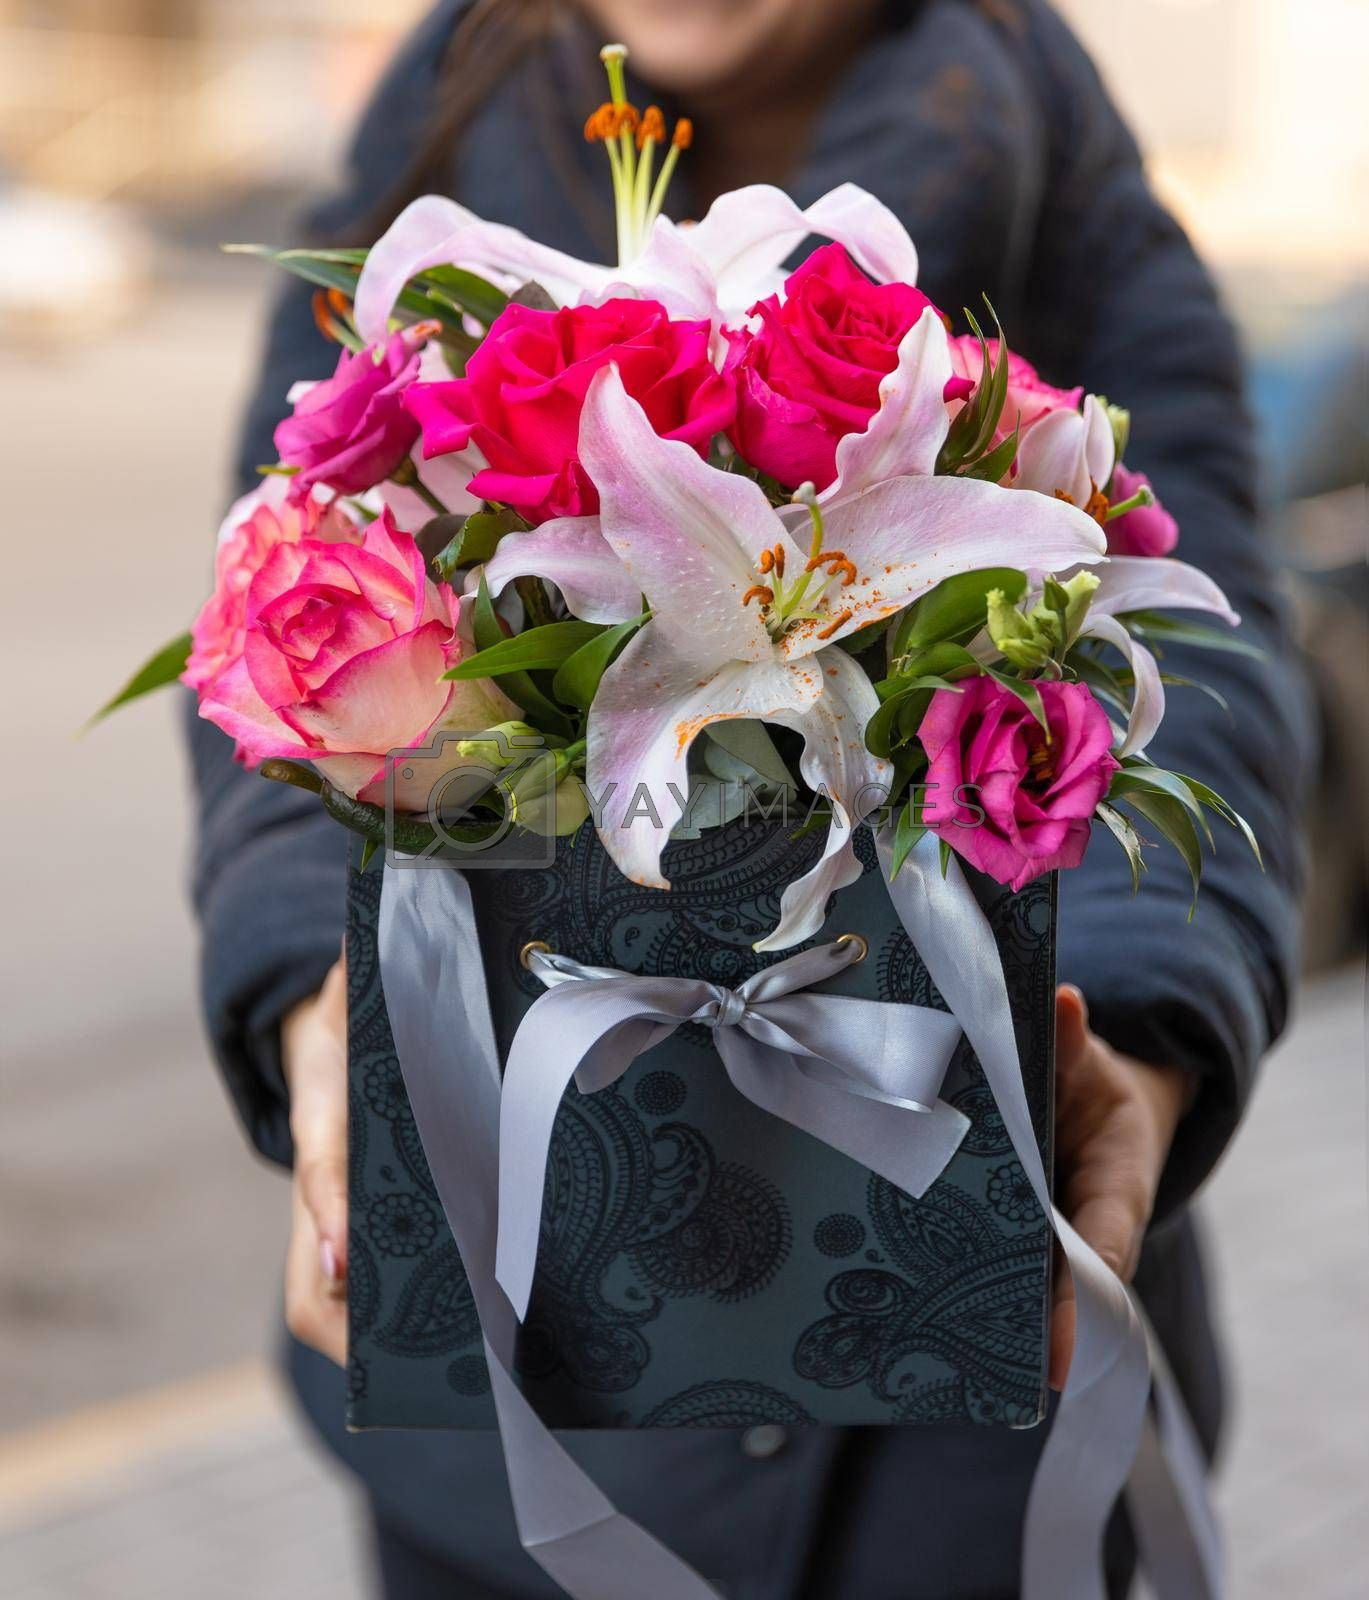 Woman holding beautiful flower bouquet in the box